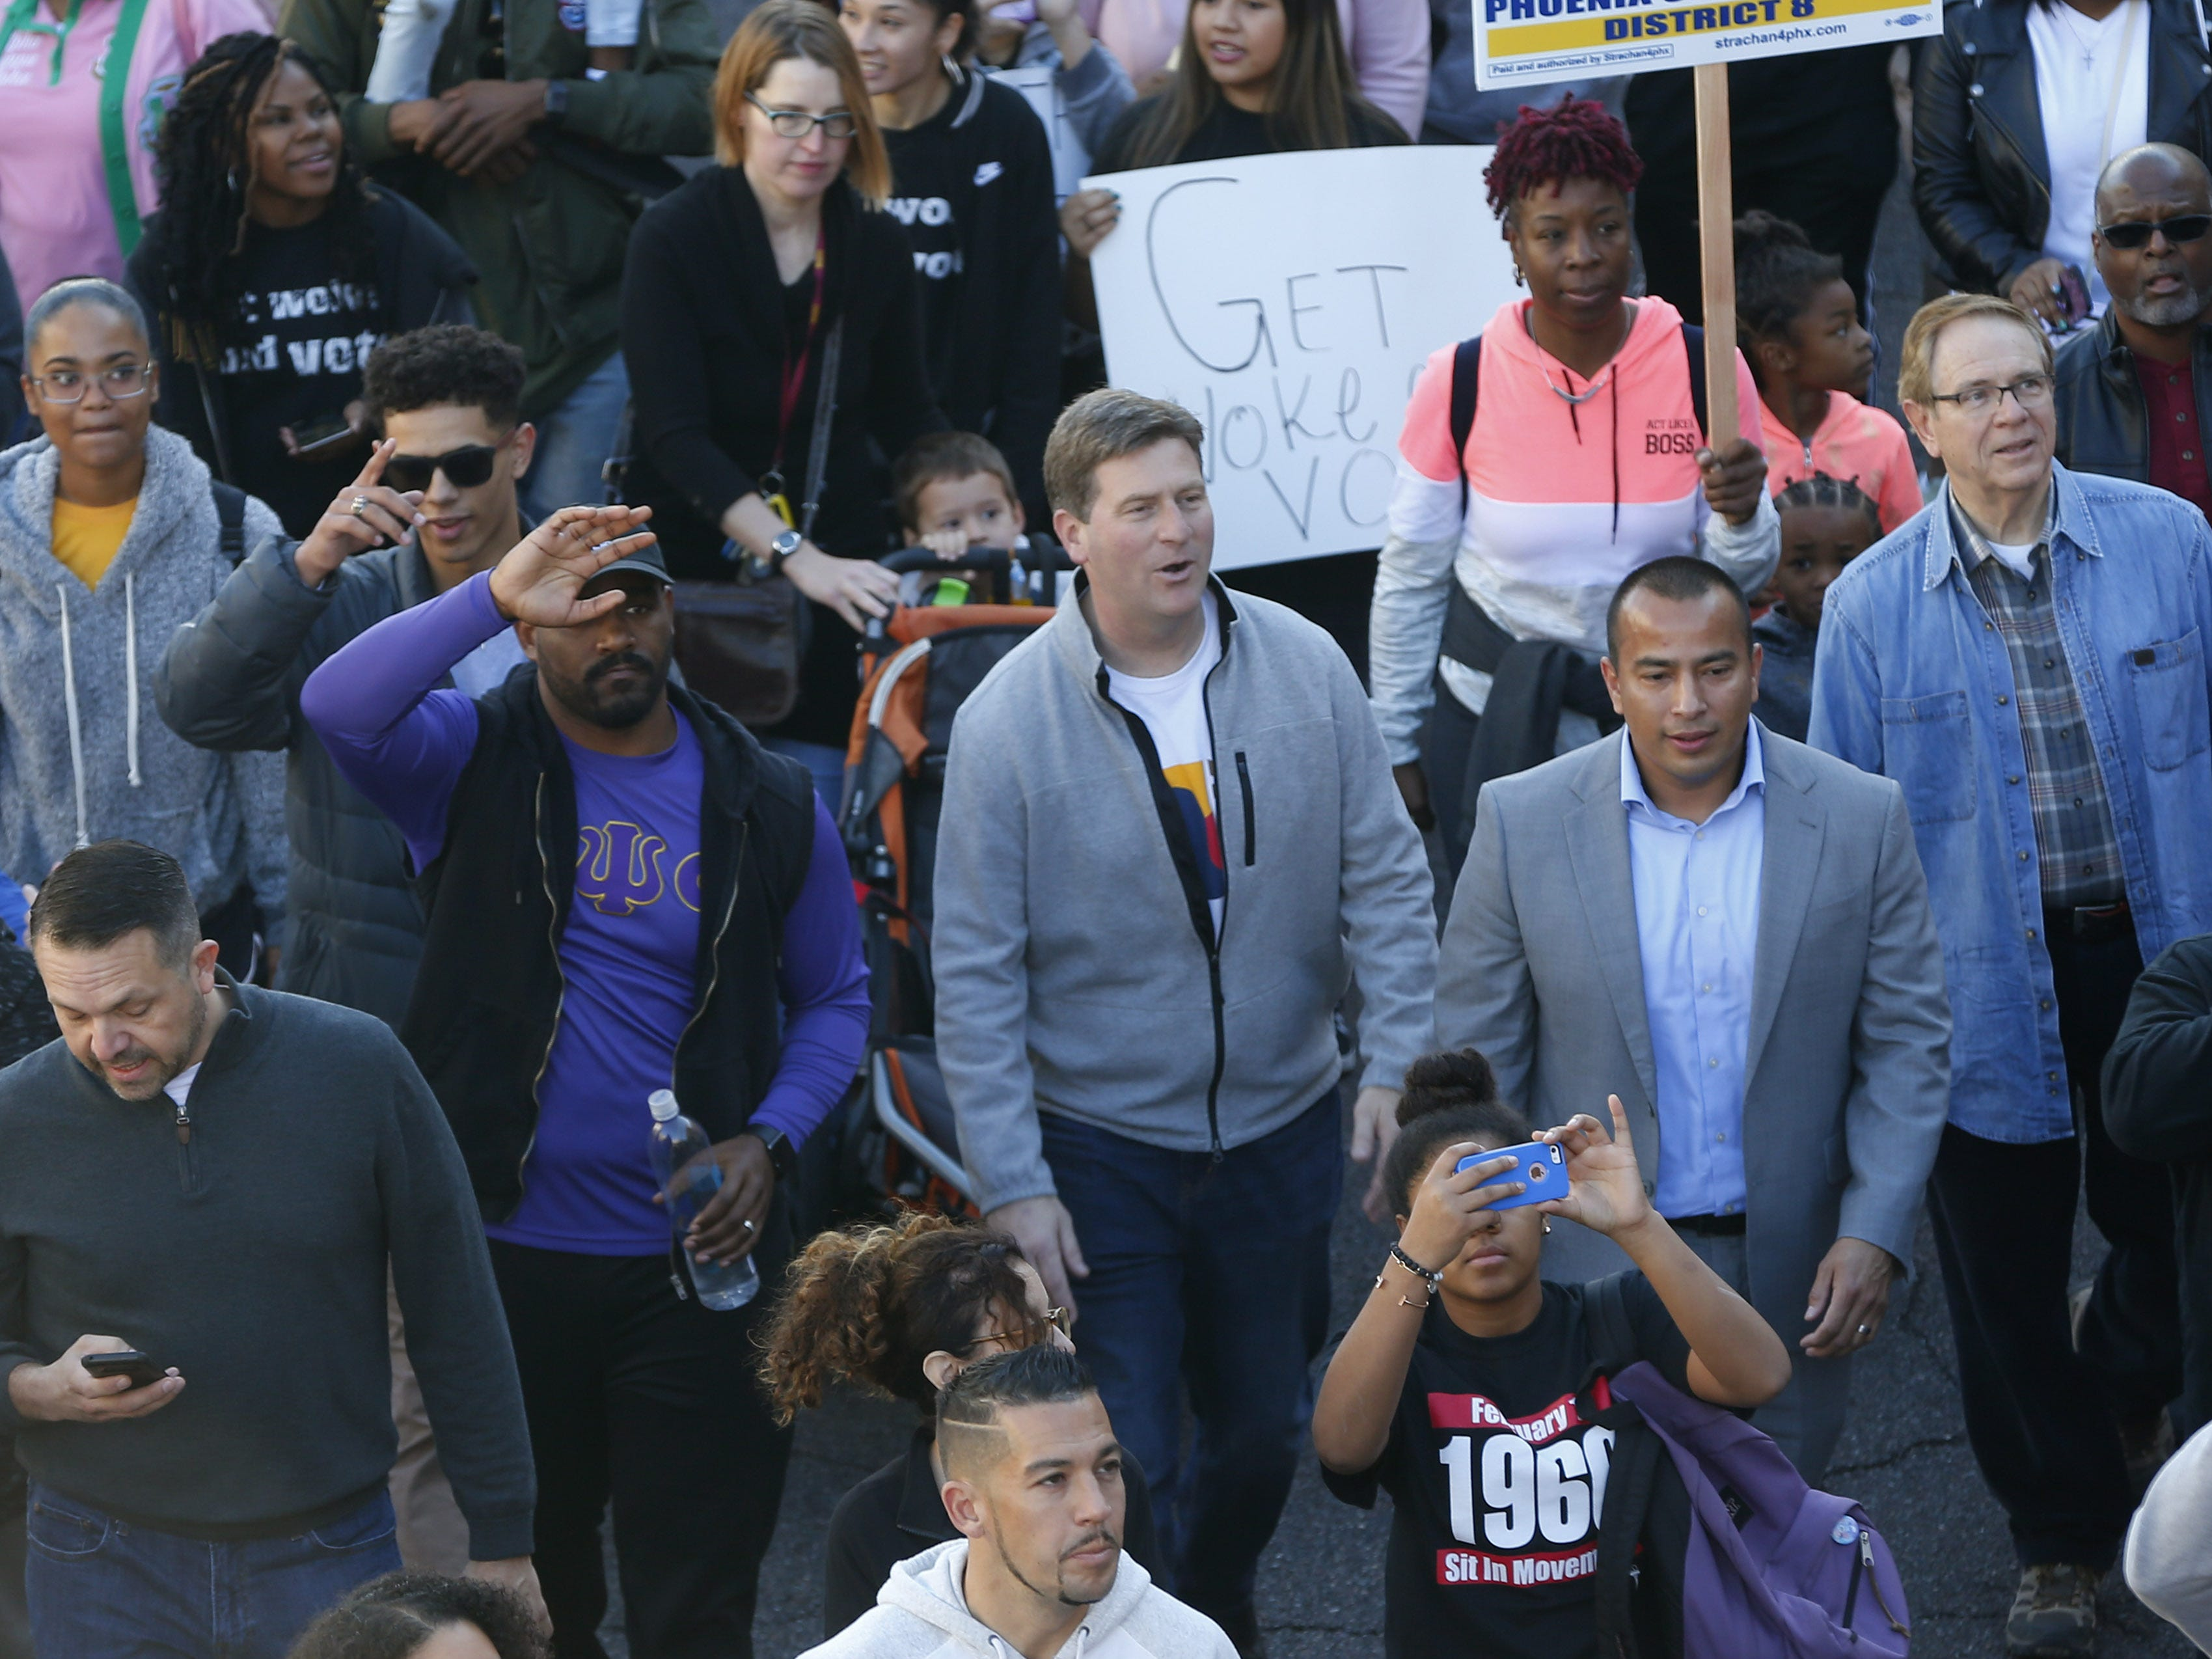 U.S. Rep. Greg Stanton (D-Ariz.) marches with others honoring Dr. Martin Luther King in downtown Phoenix, Ariz. January 21, 2019. The march is symbolic of Dr. King's revolutionary 1968 march.